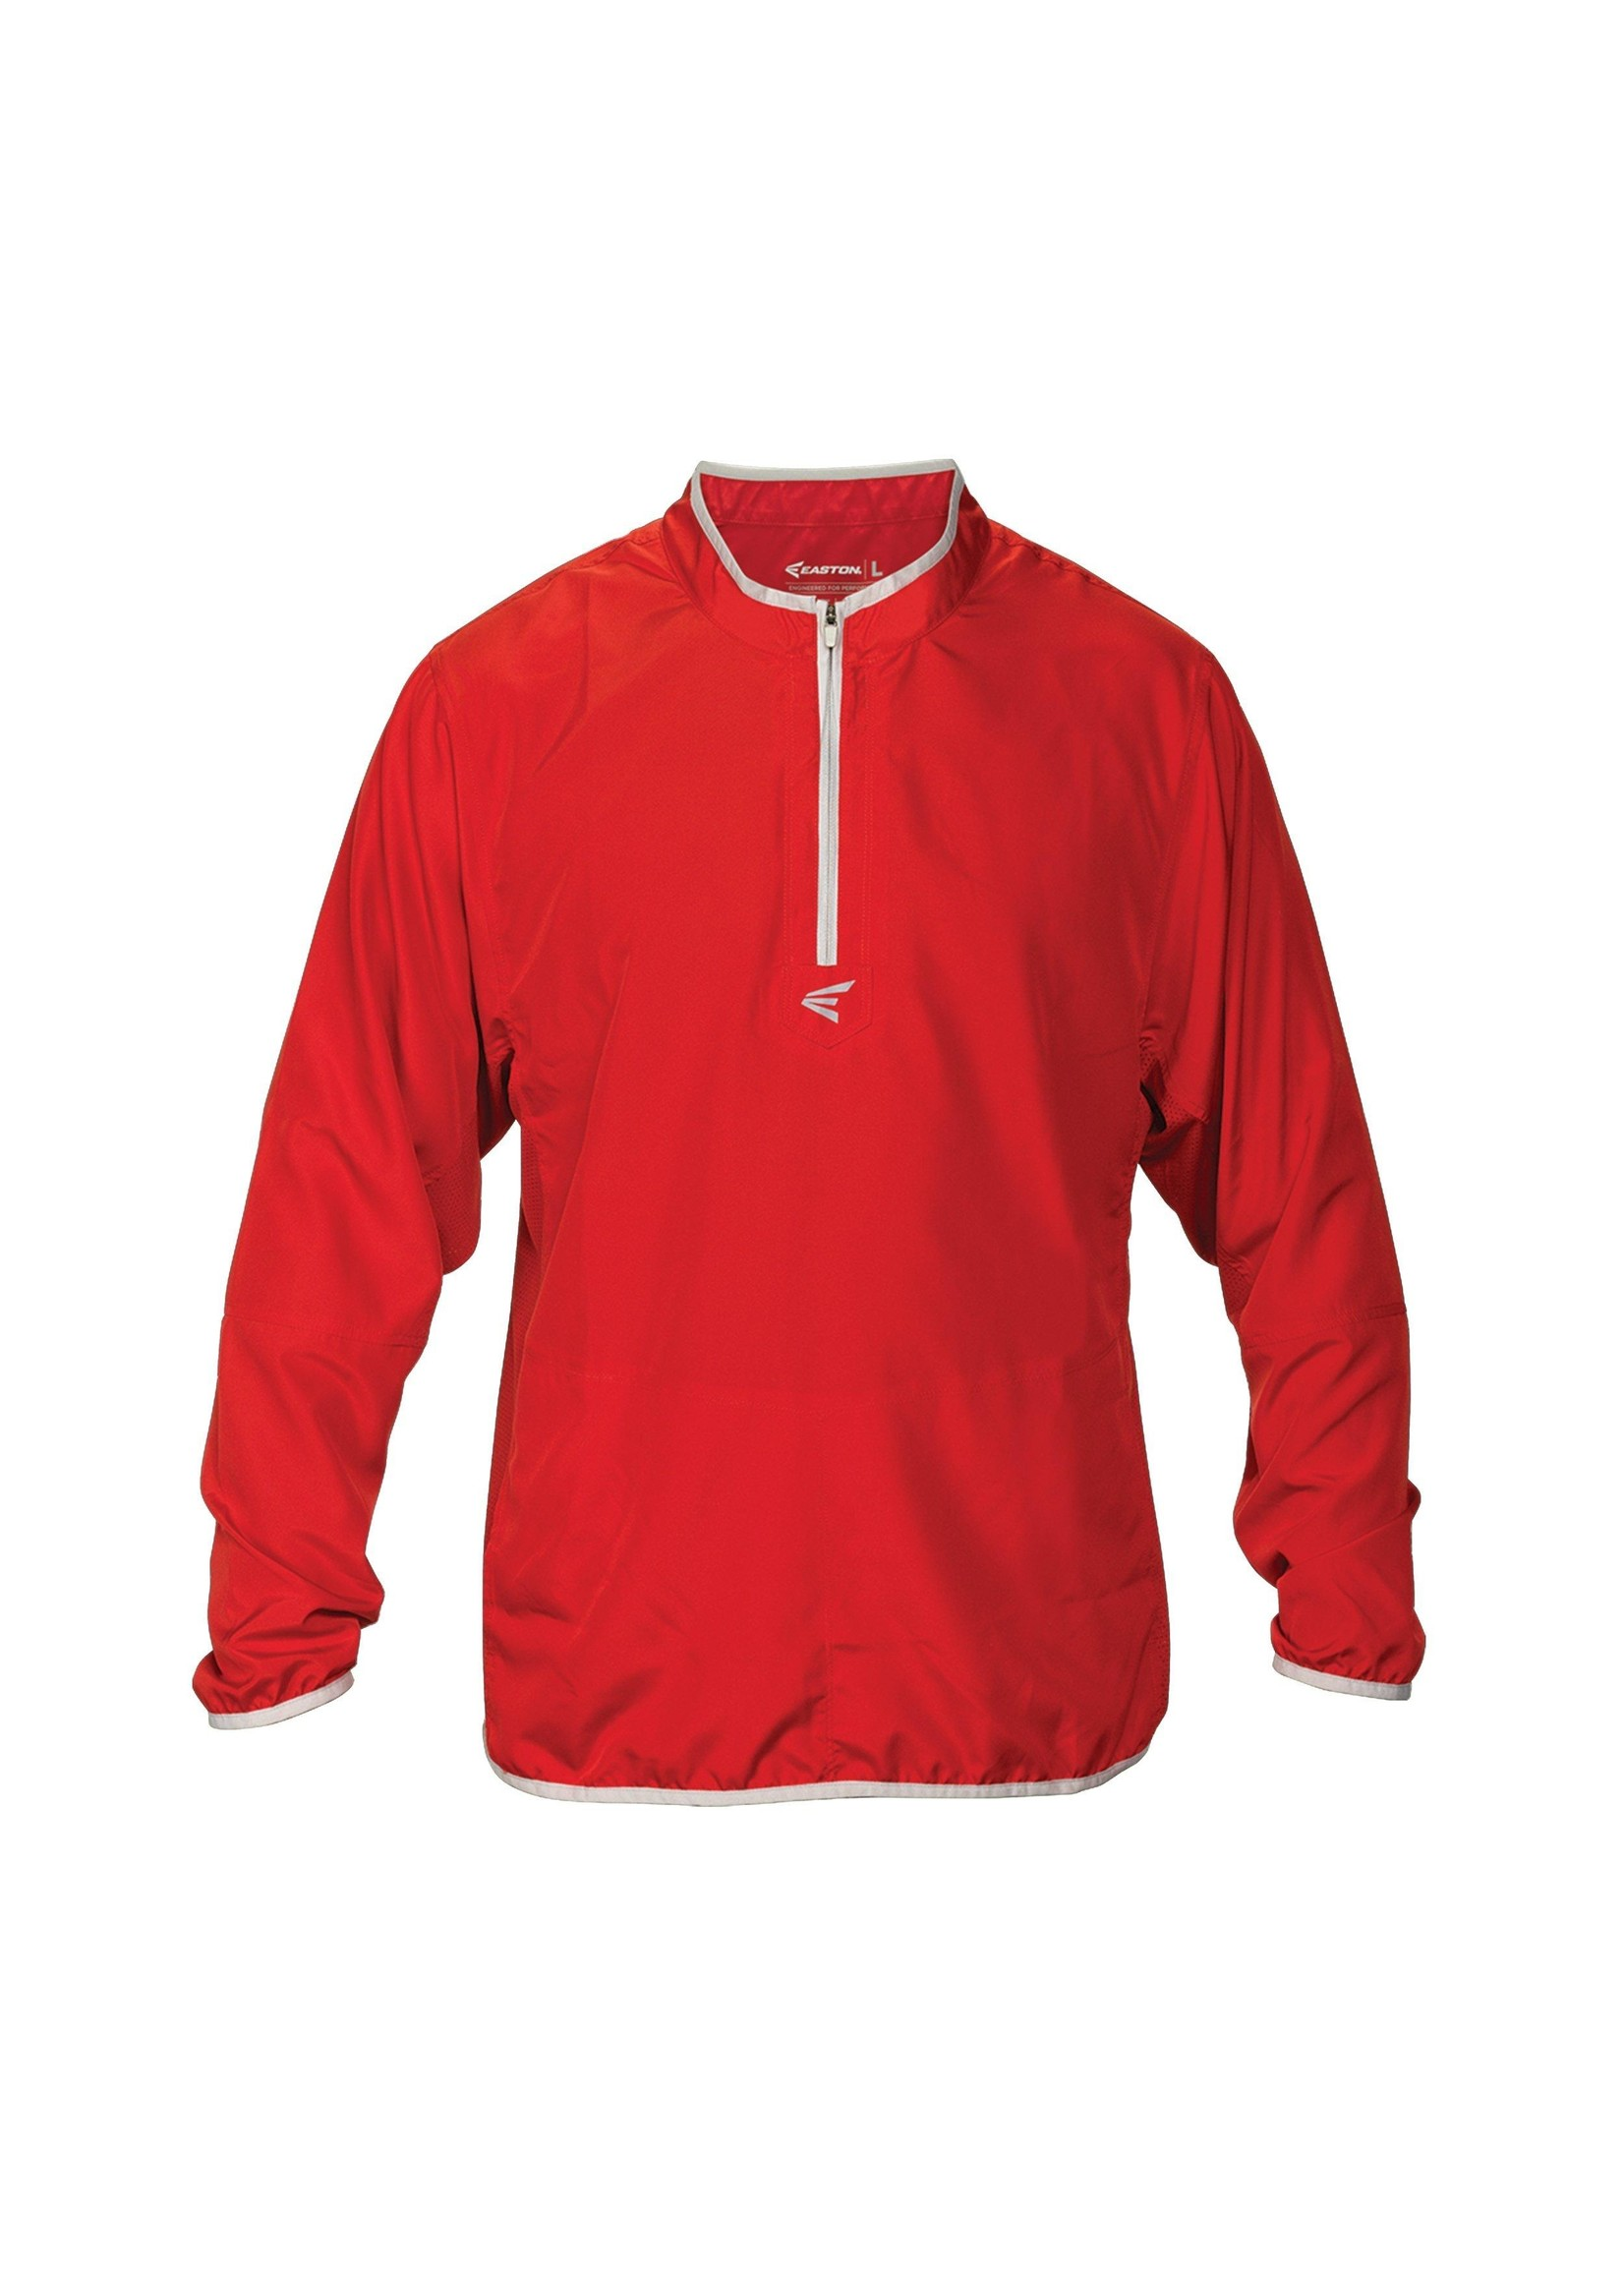 Easton Baseball (Canada) EASTON M5 CAGE JACKET